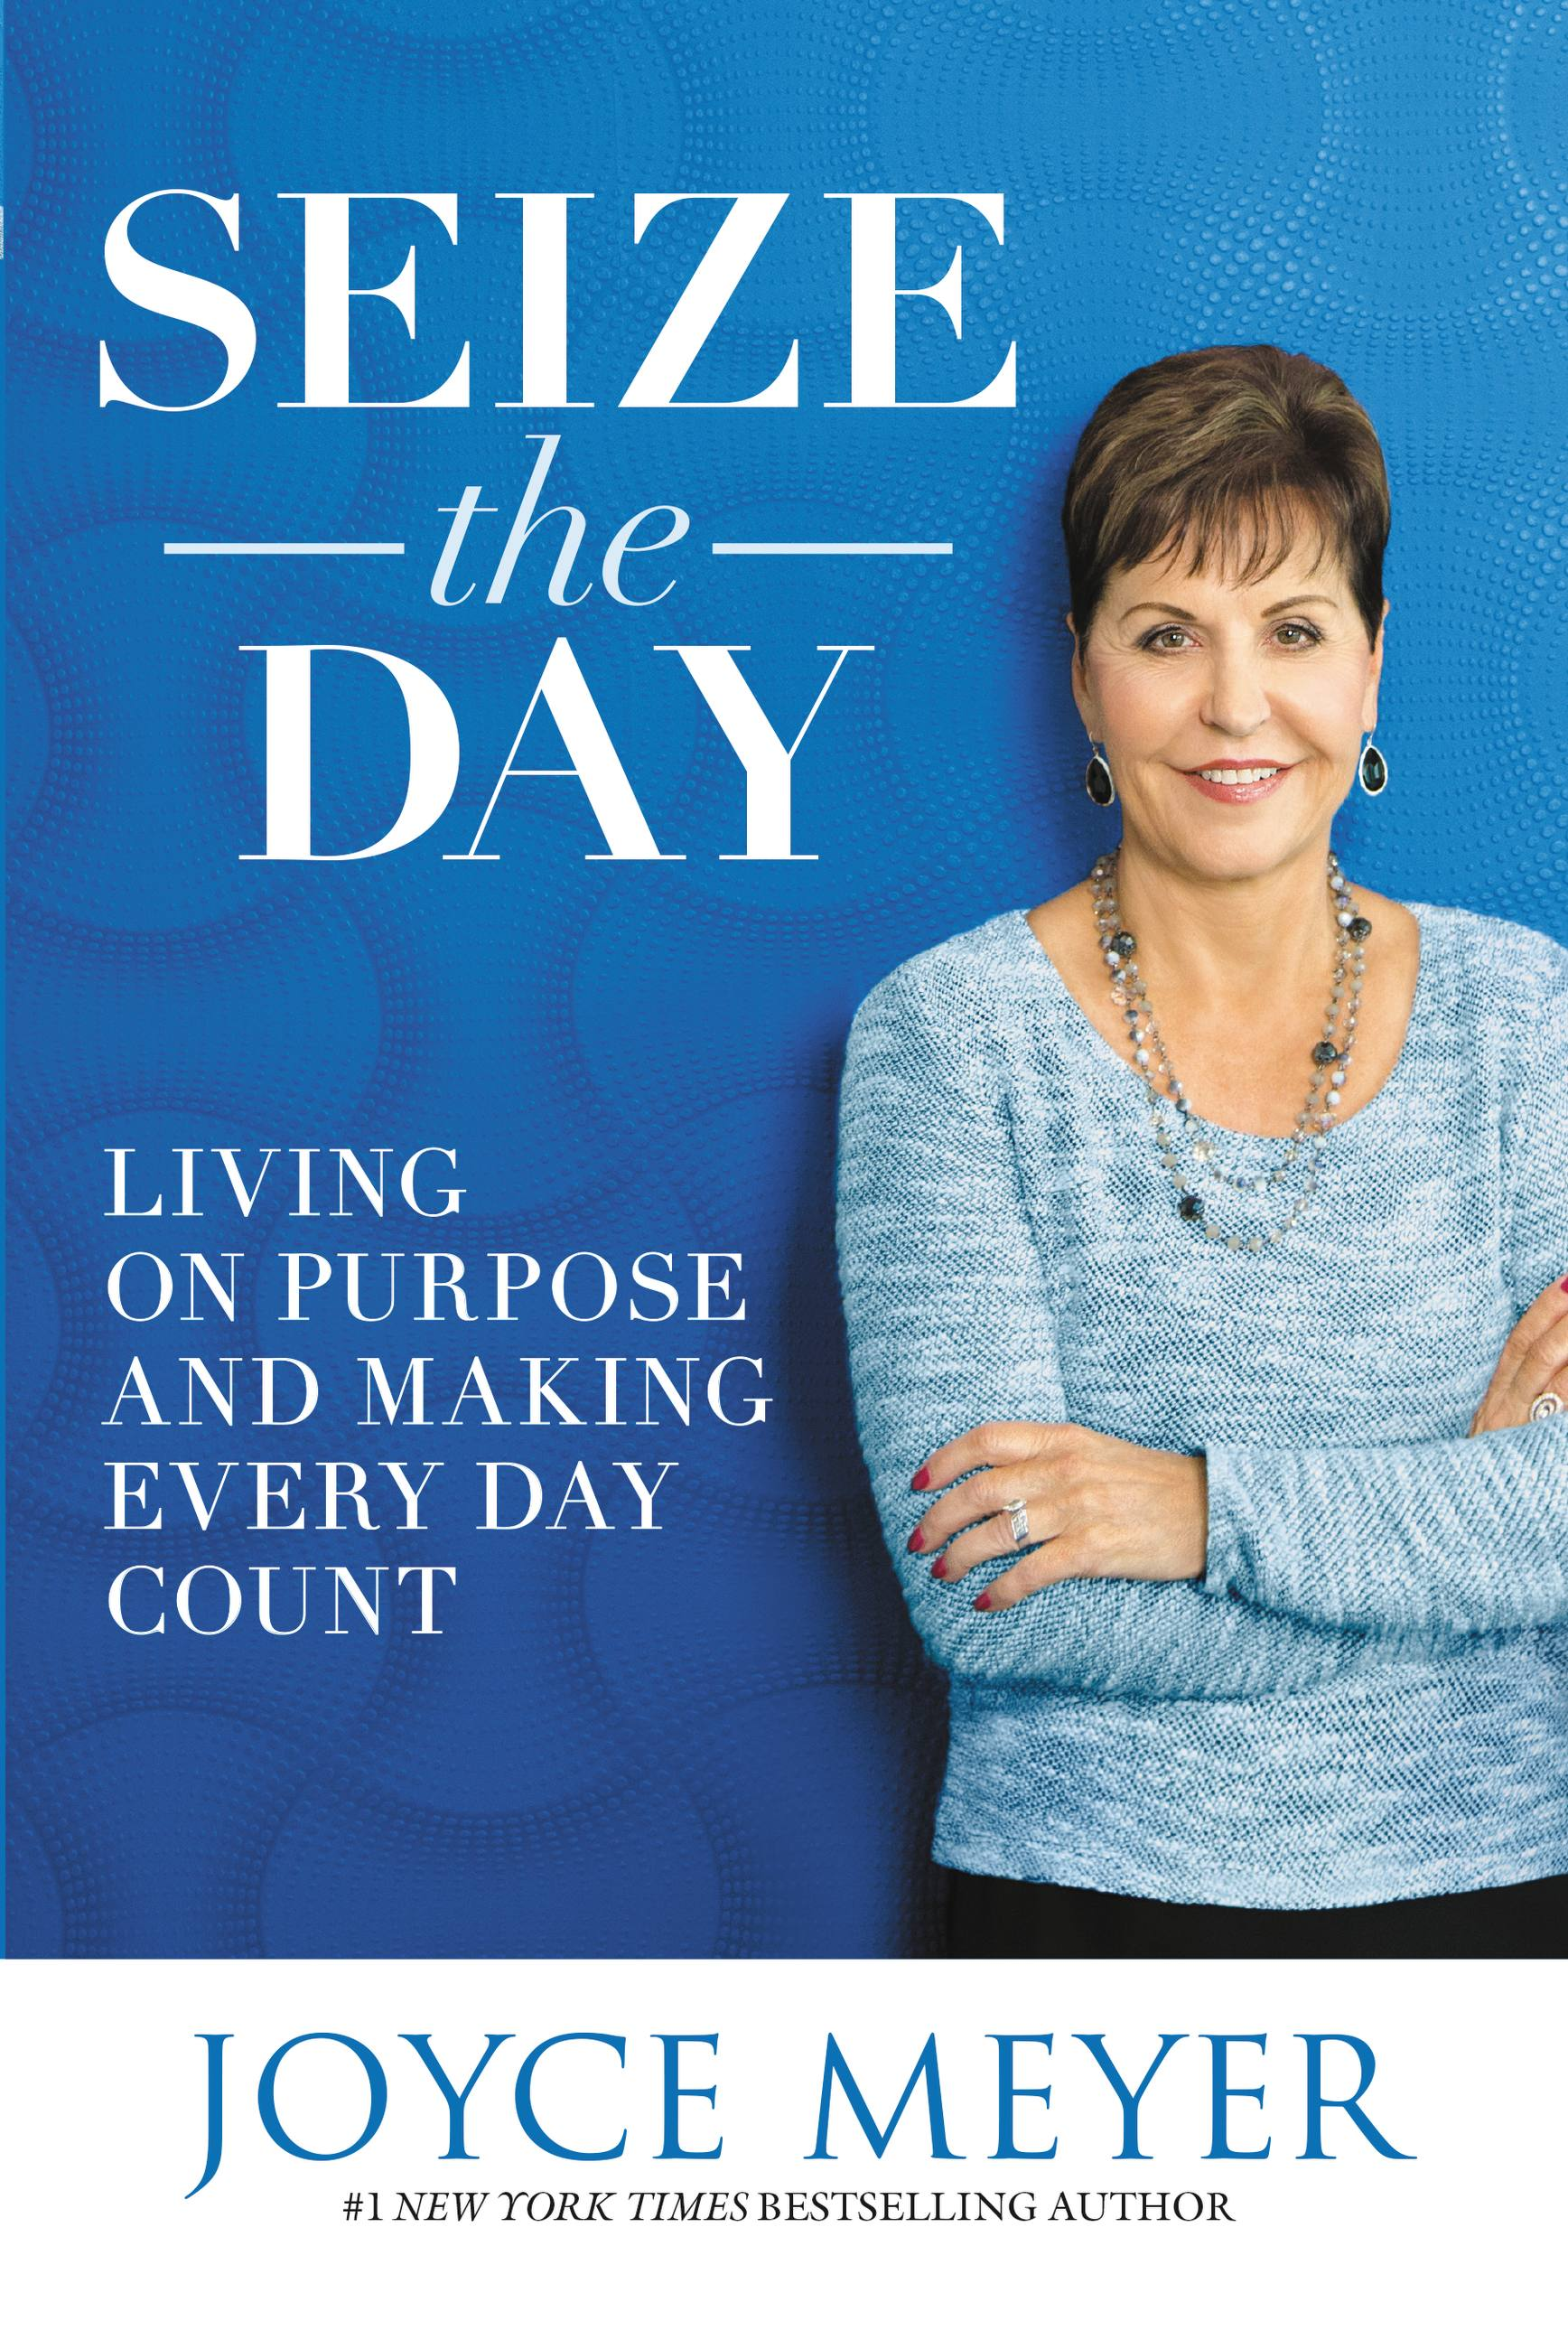 Seize the Day Living on Purpose and Making Every Day Count